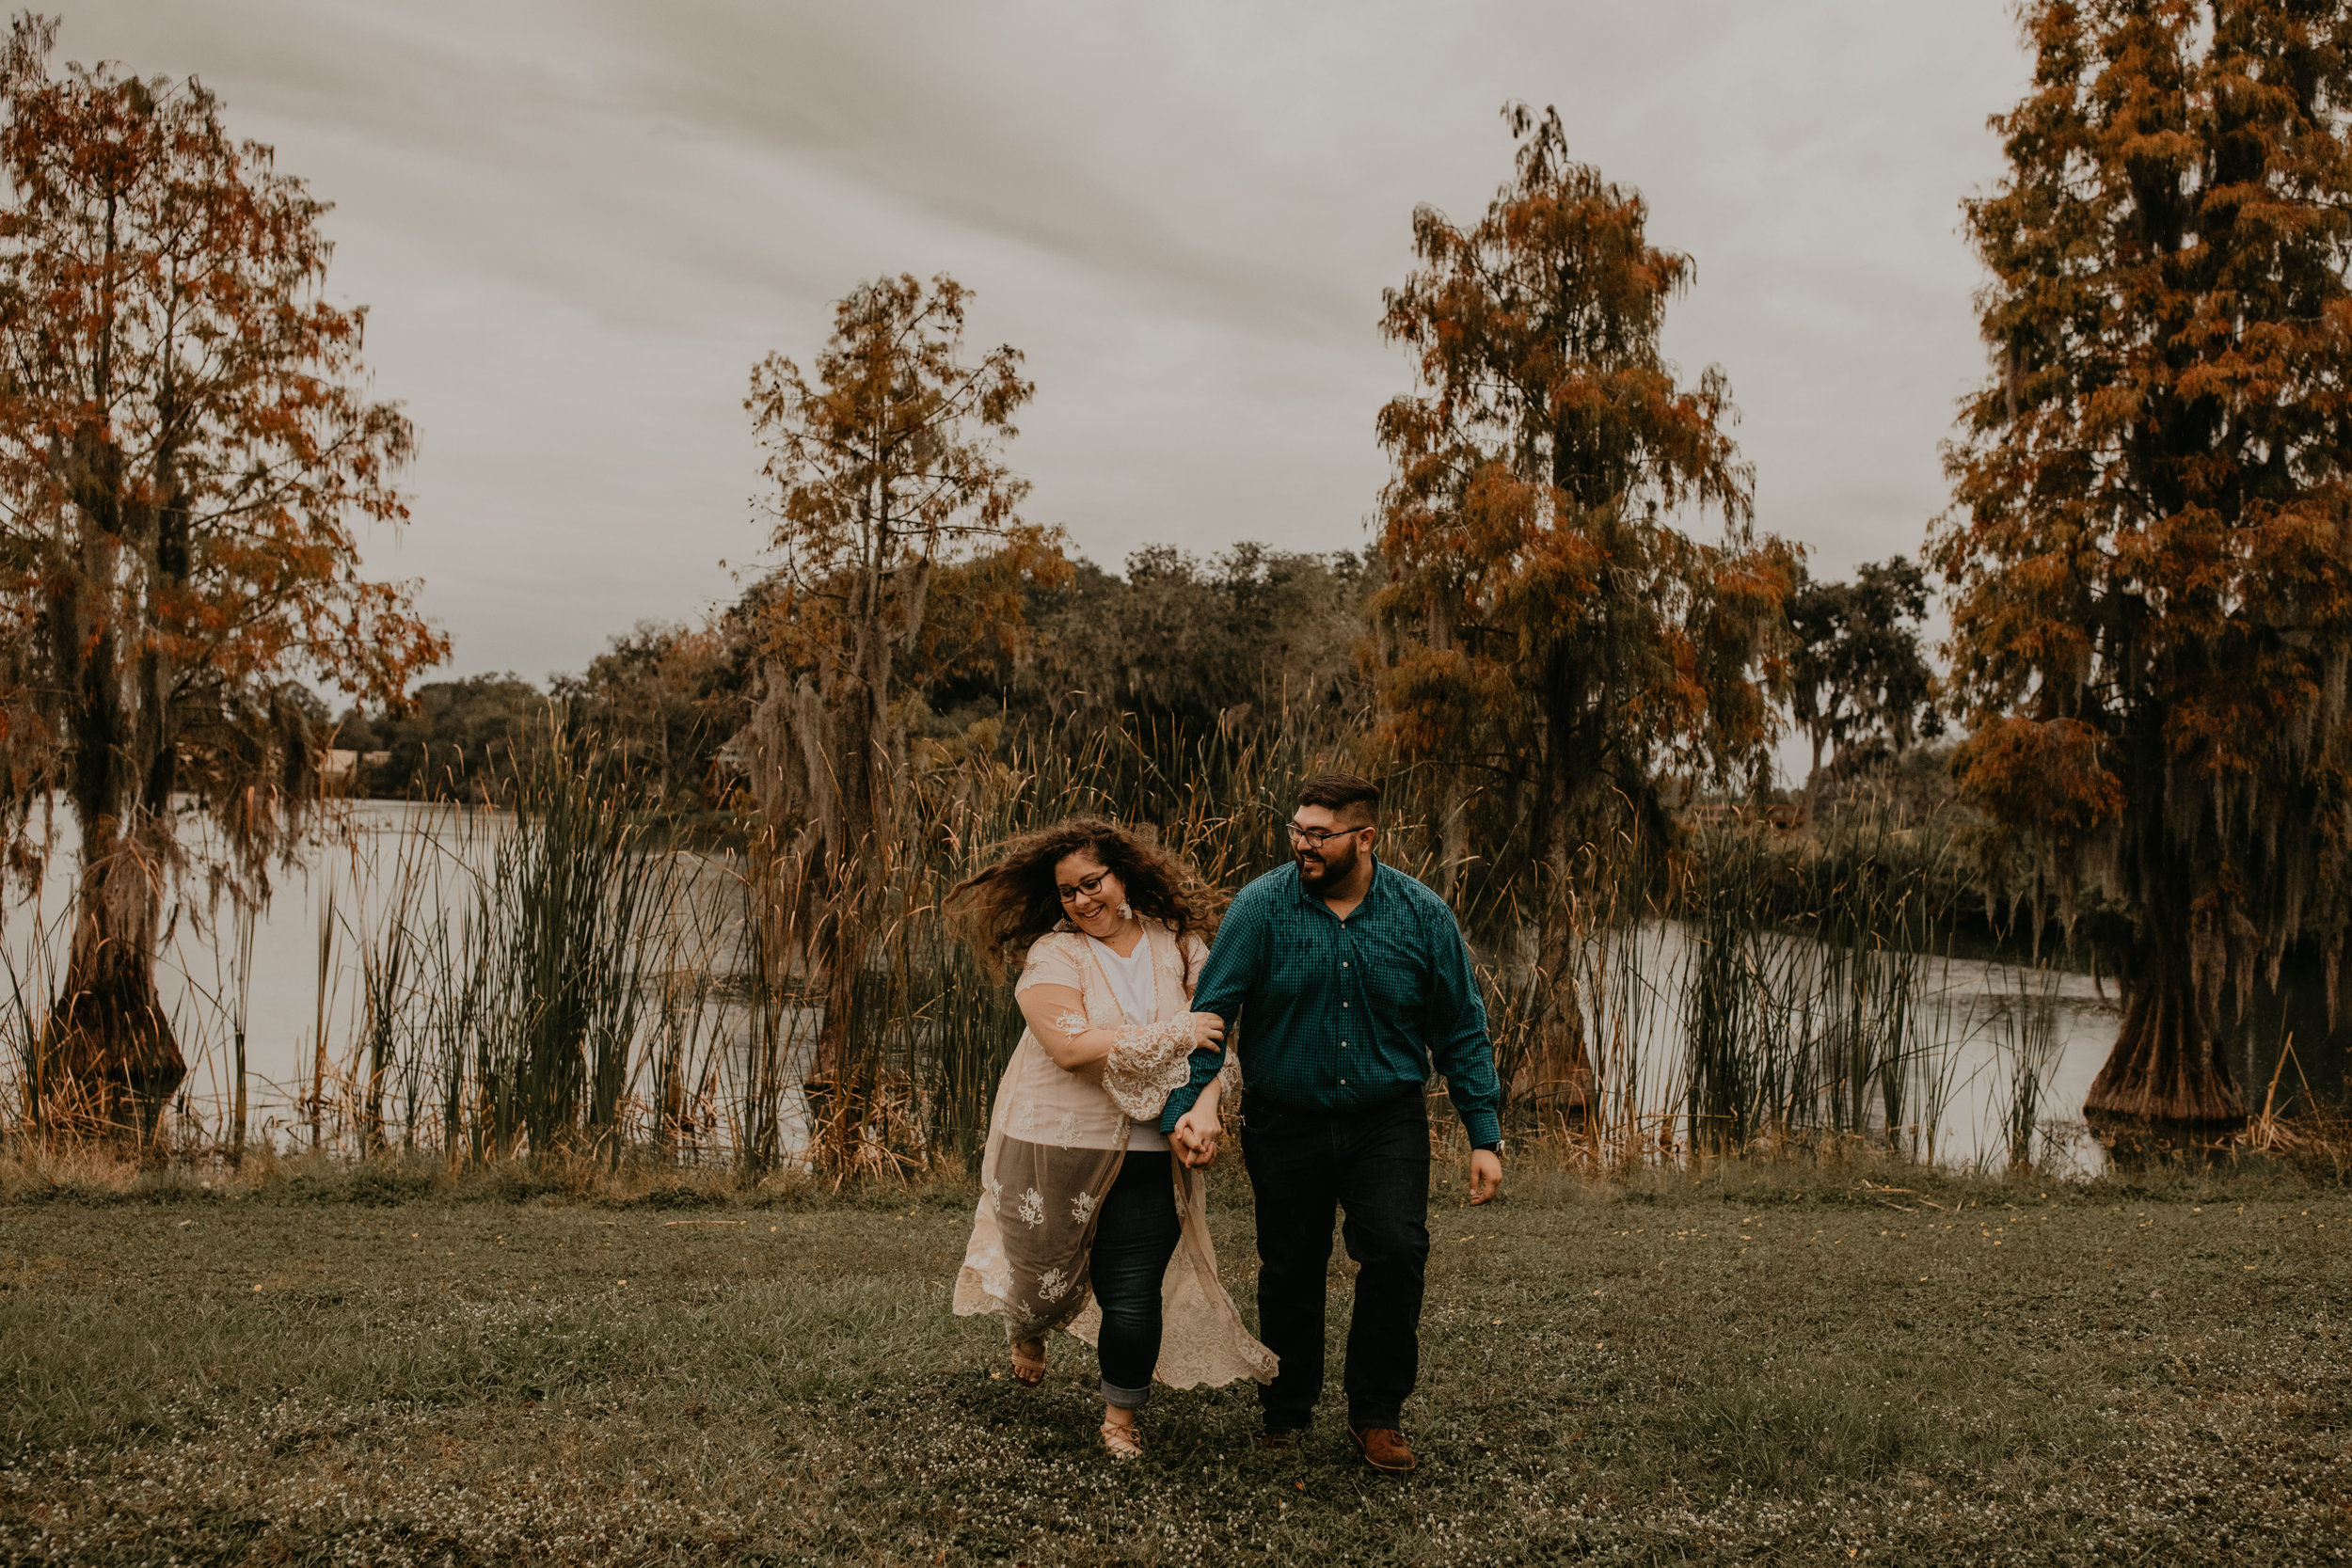 patterson park fort meade fl Florida-Engagement Session- meredith and Julian126.jpg